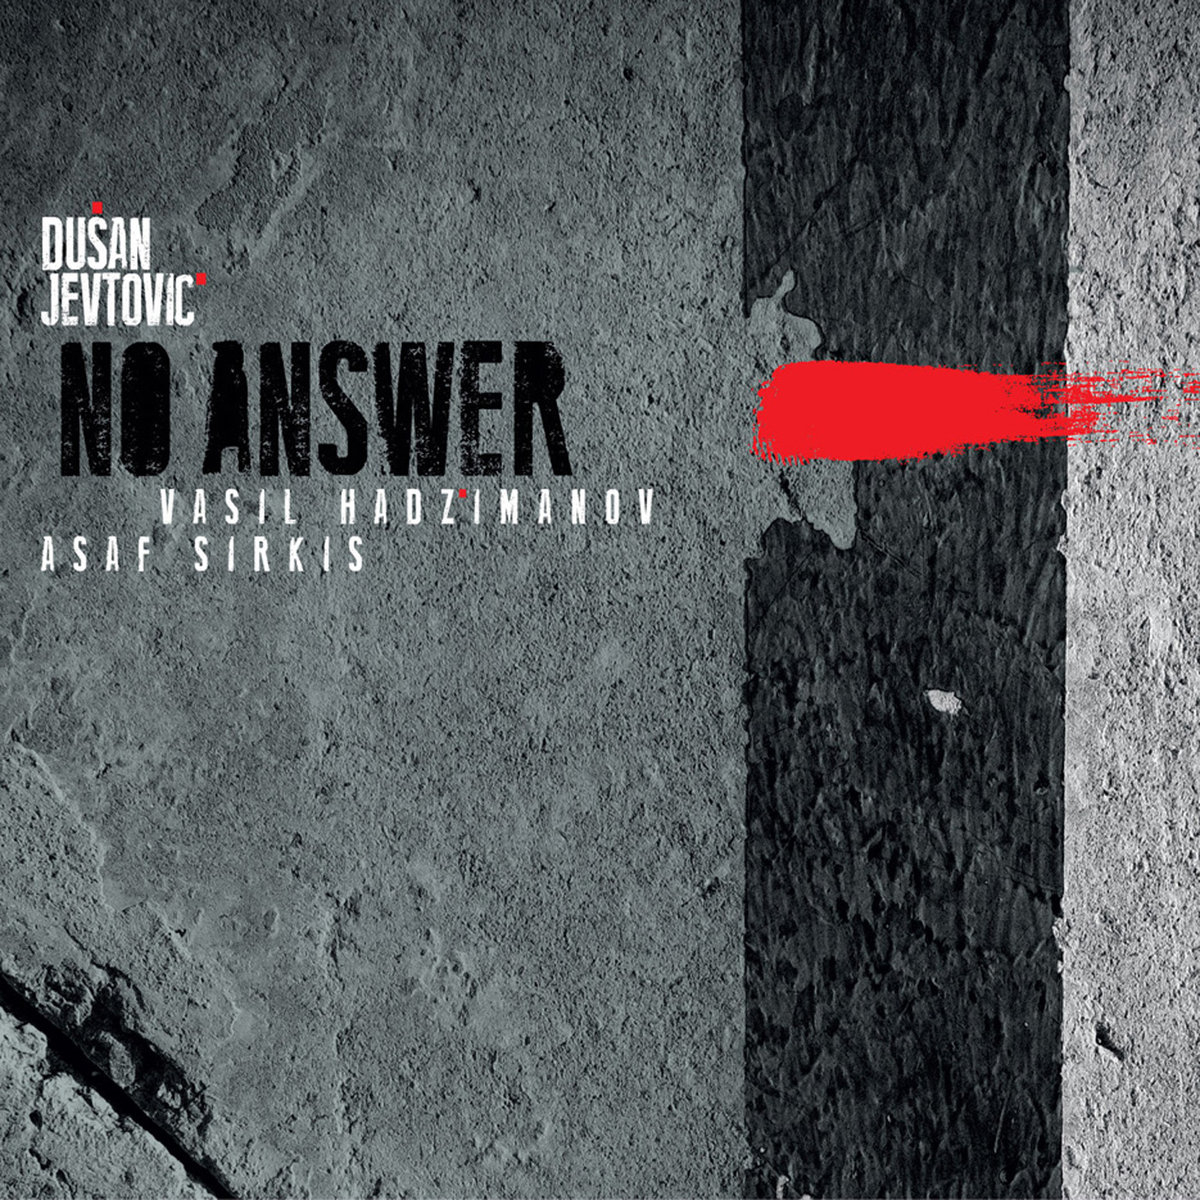 Dusan Jevtovic: No Answer